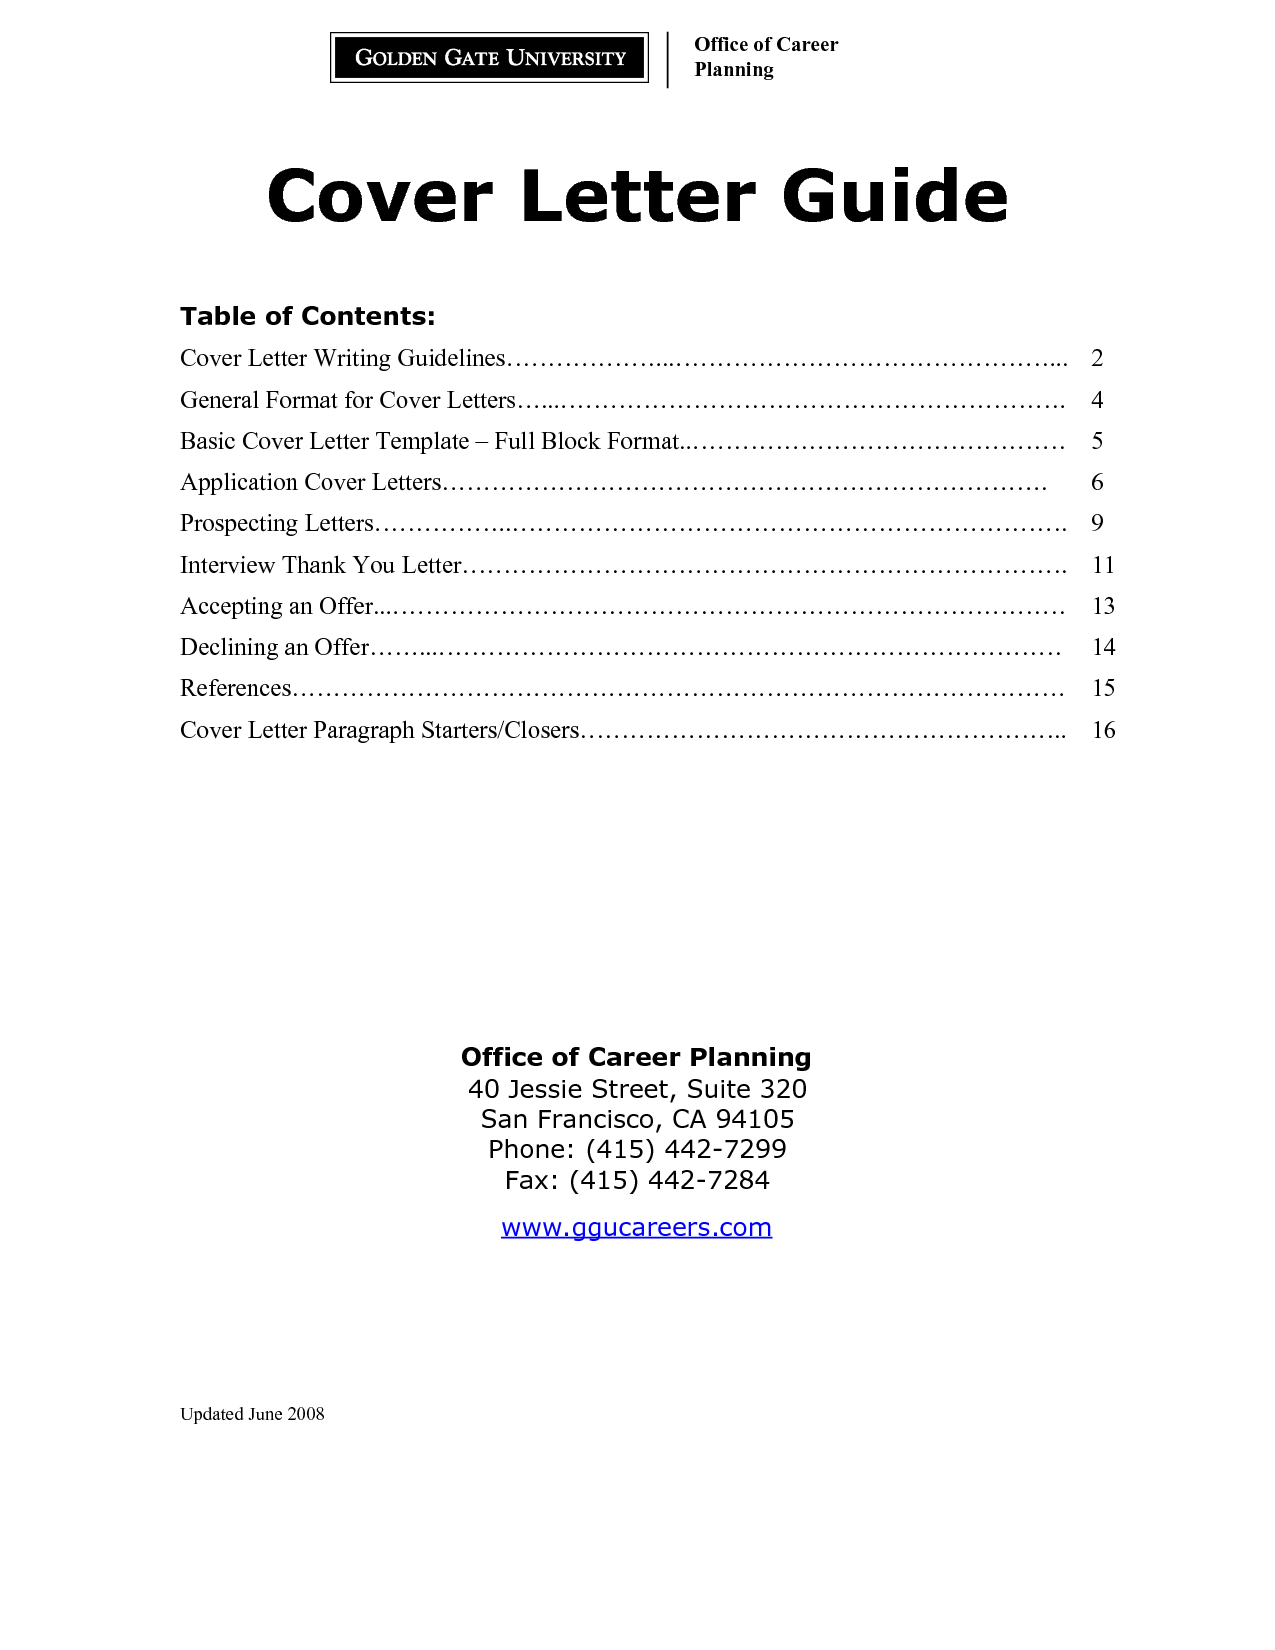 sample of a cover letter. Resume Example. Resume CV Cover Letter